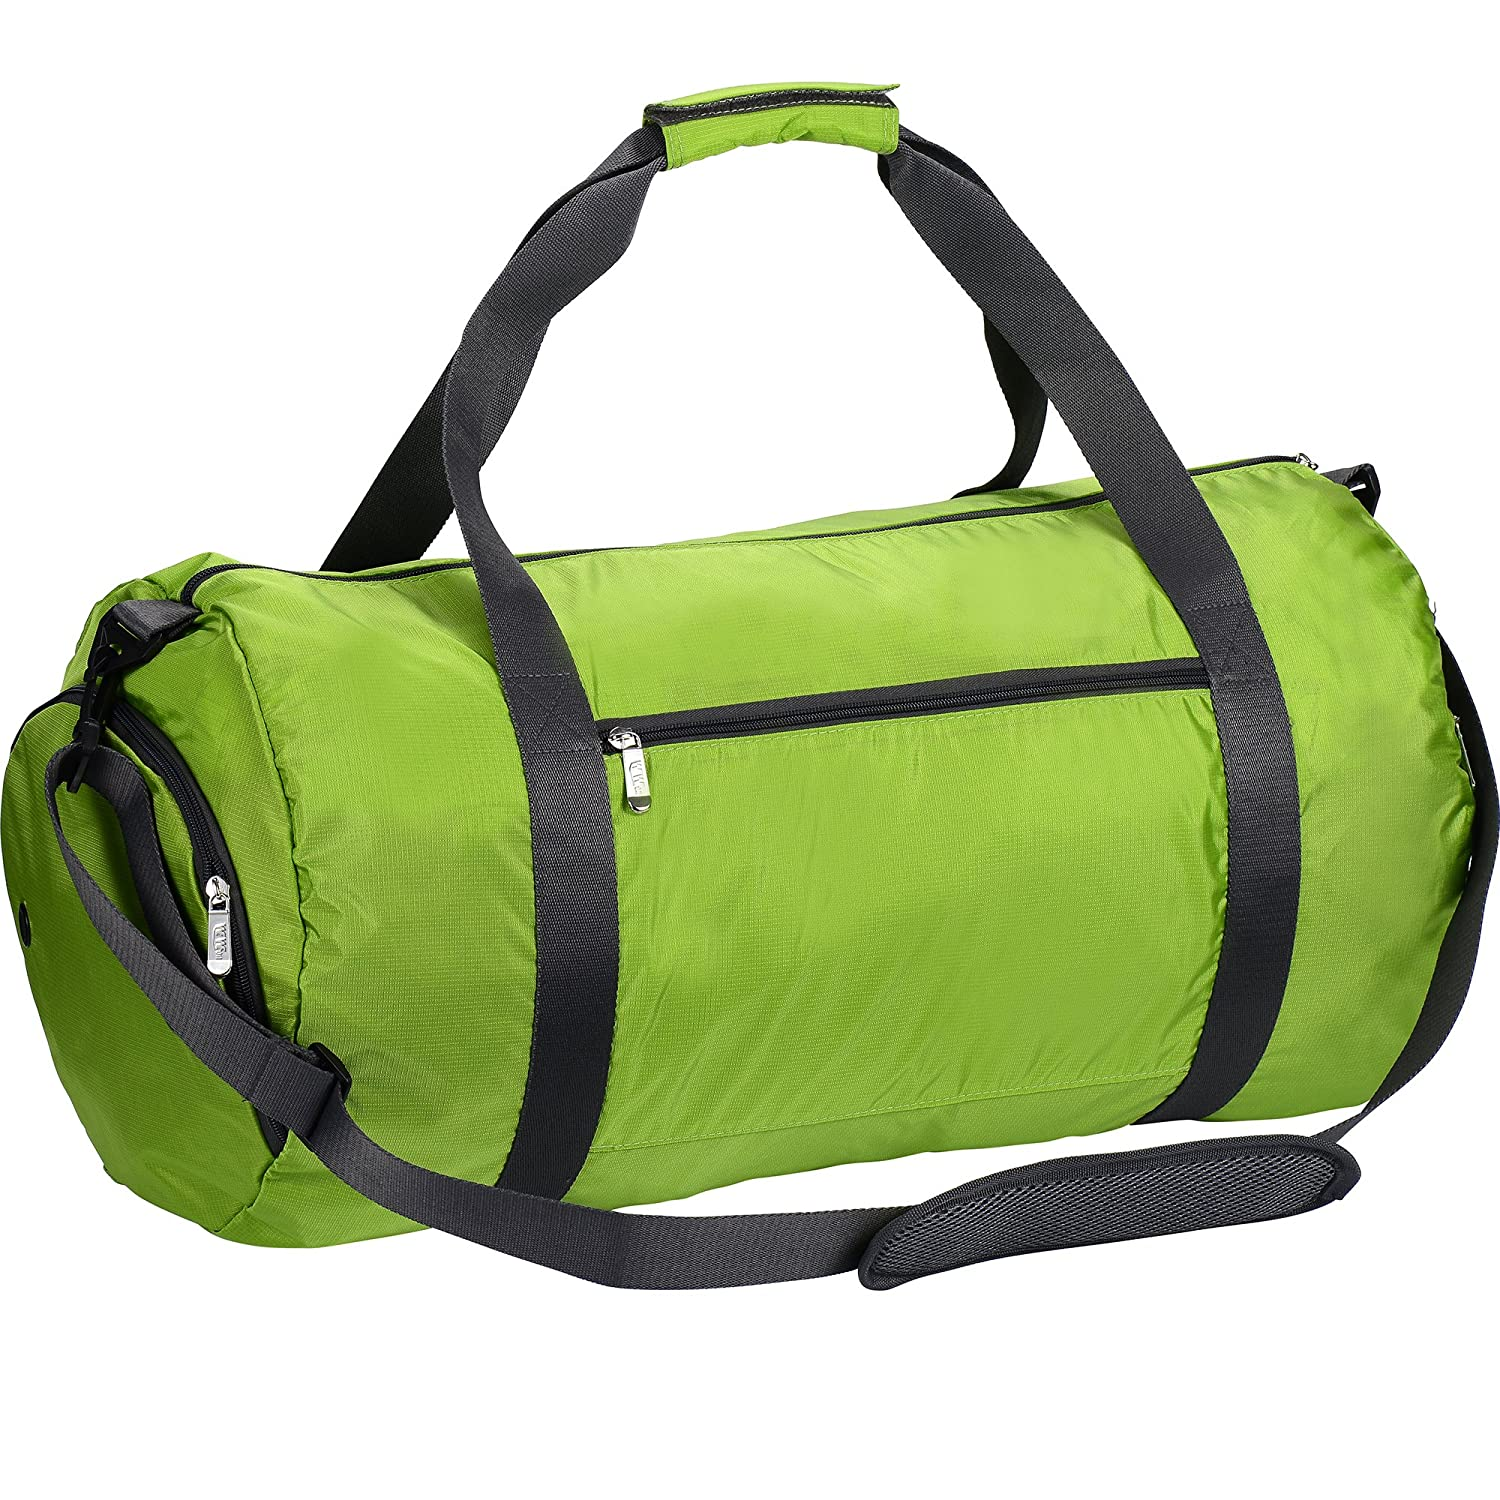 WEWEON Gym Bag with Shoes Compartment Travel Duffel for Men and Women  Including Large Gear Workout 9bde968101